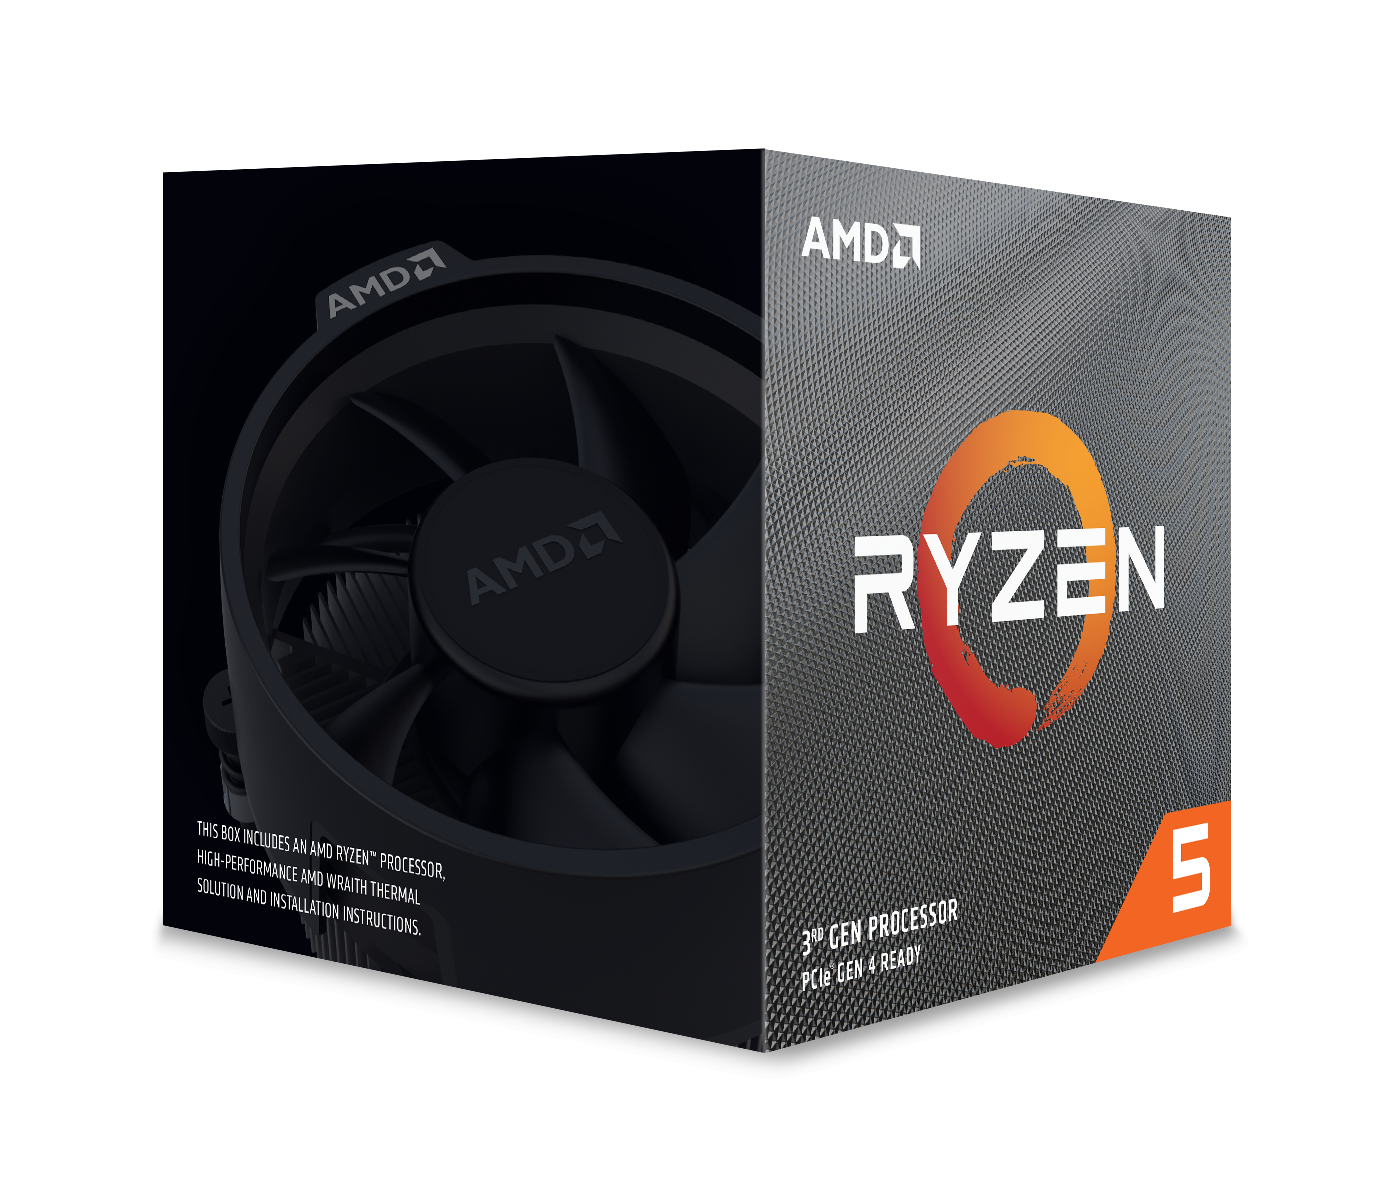 Процесор AMD RYZEN 5 3600X 6-Core 3.8 GHz (4.4 GHz Turbo) 35MB/95W/AM4/BOX